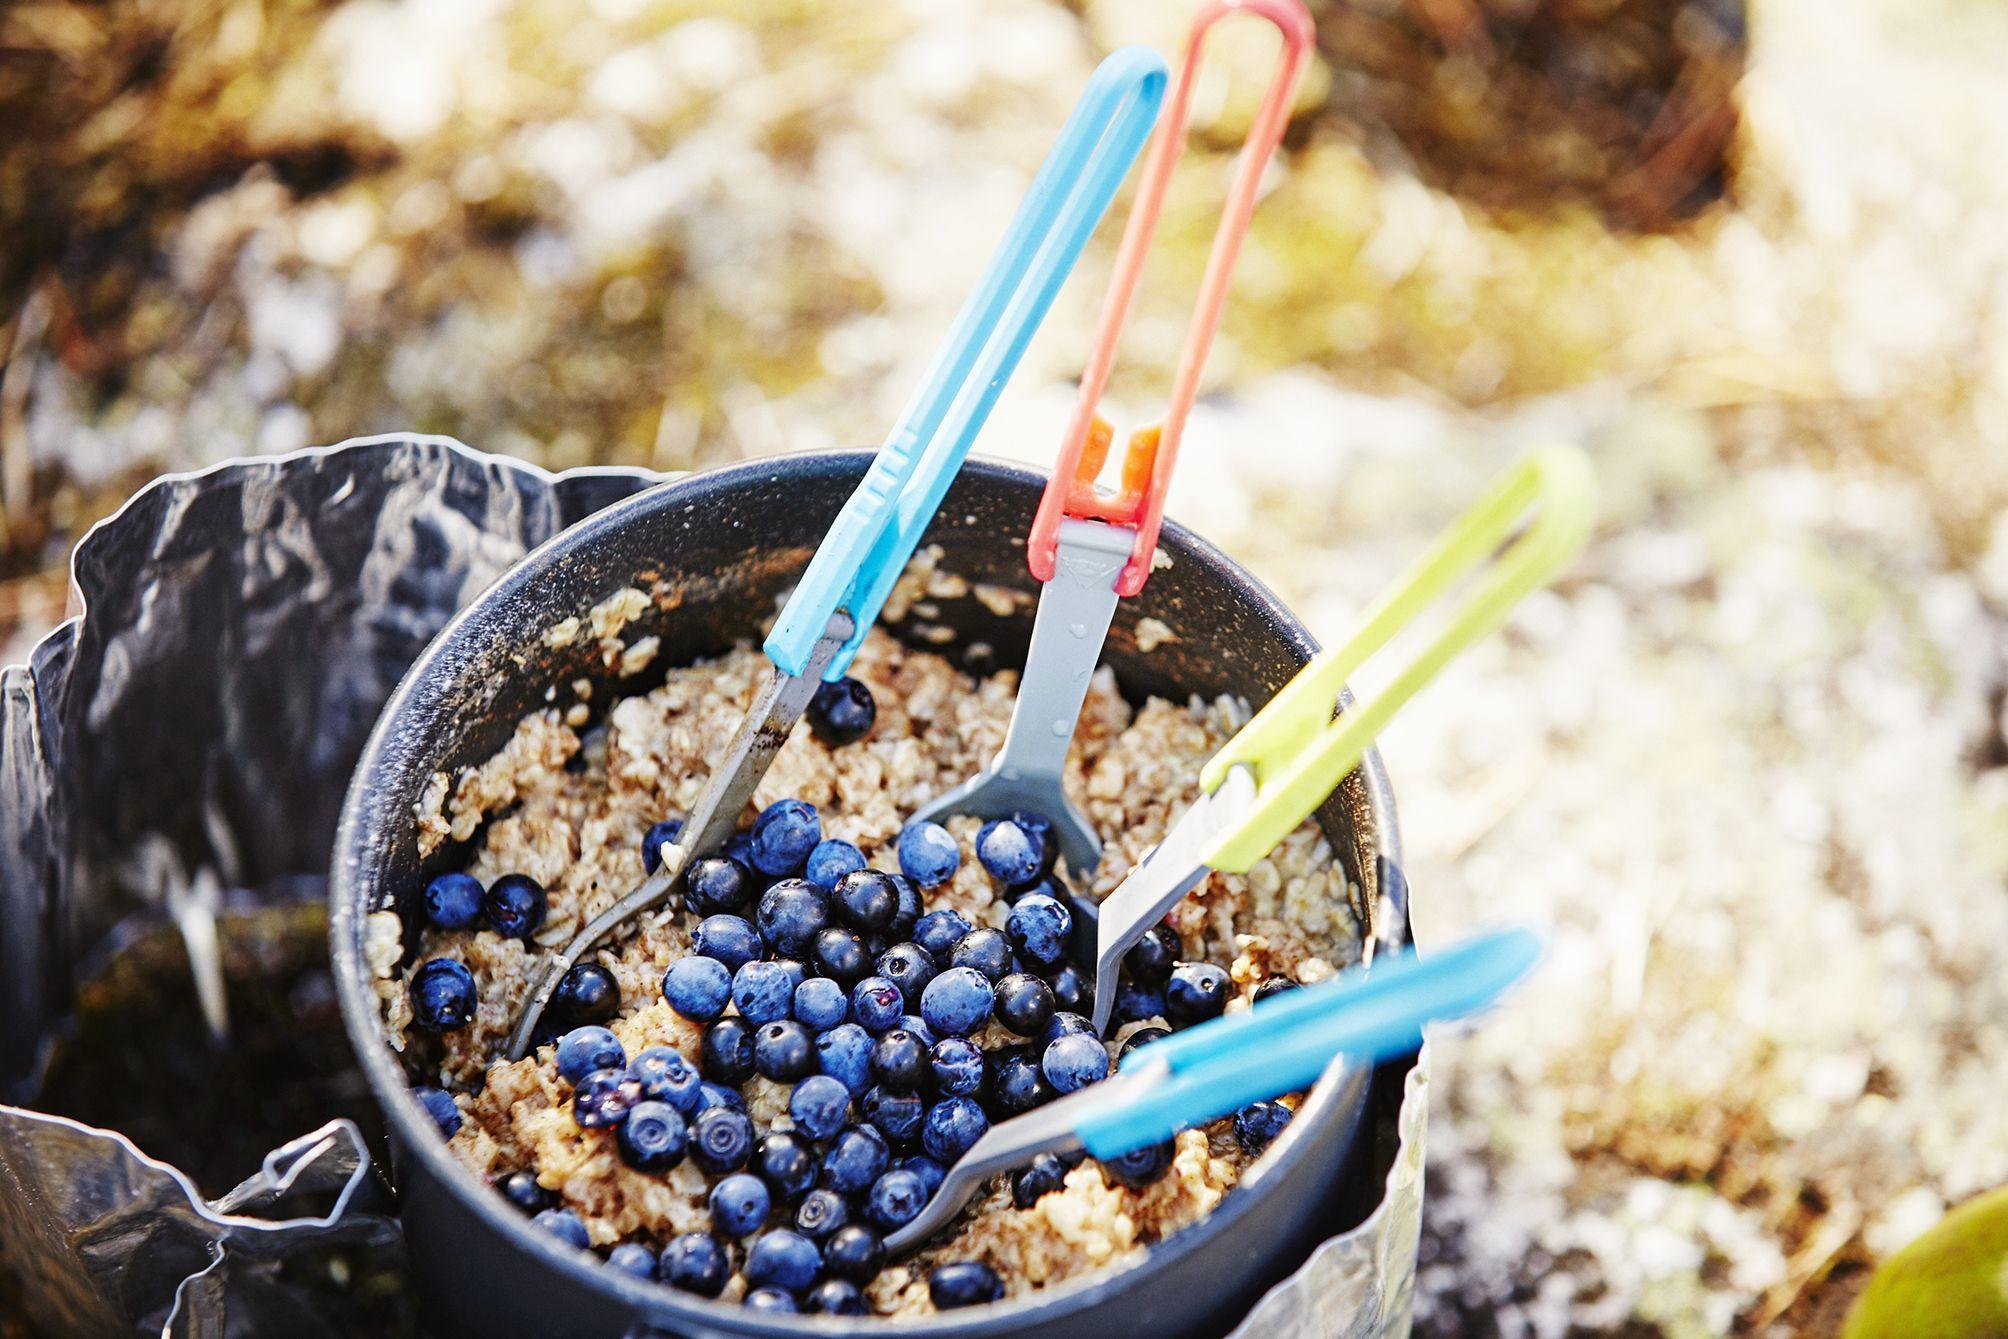 Image of breaktfast porridge with gathered blueberries and four colourful camping spoons on a cooker on a packraft expedition in Norway